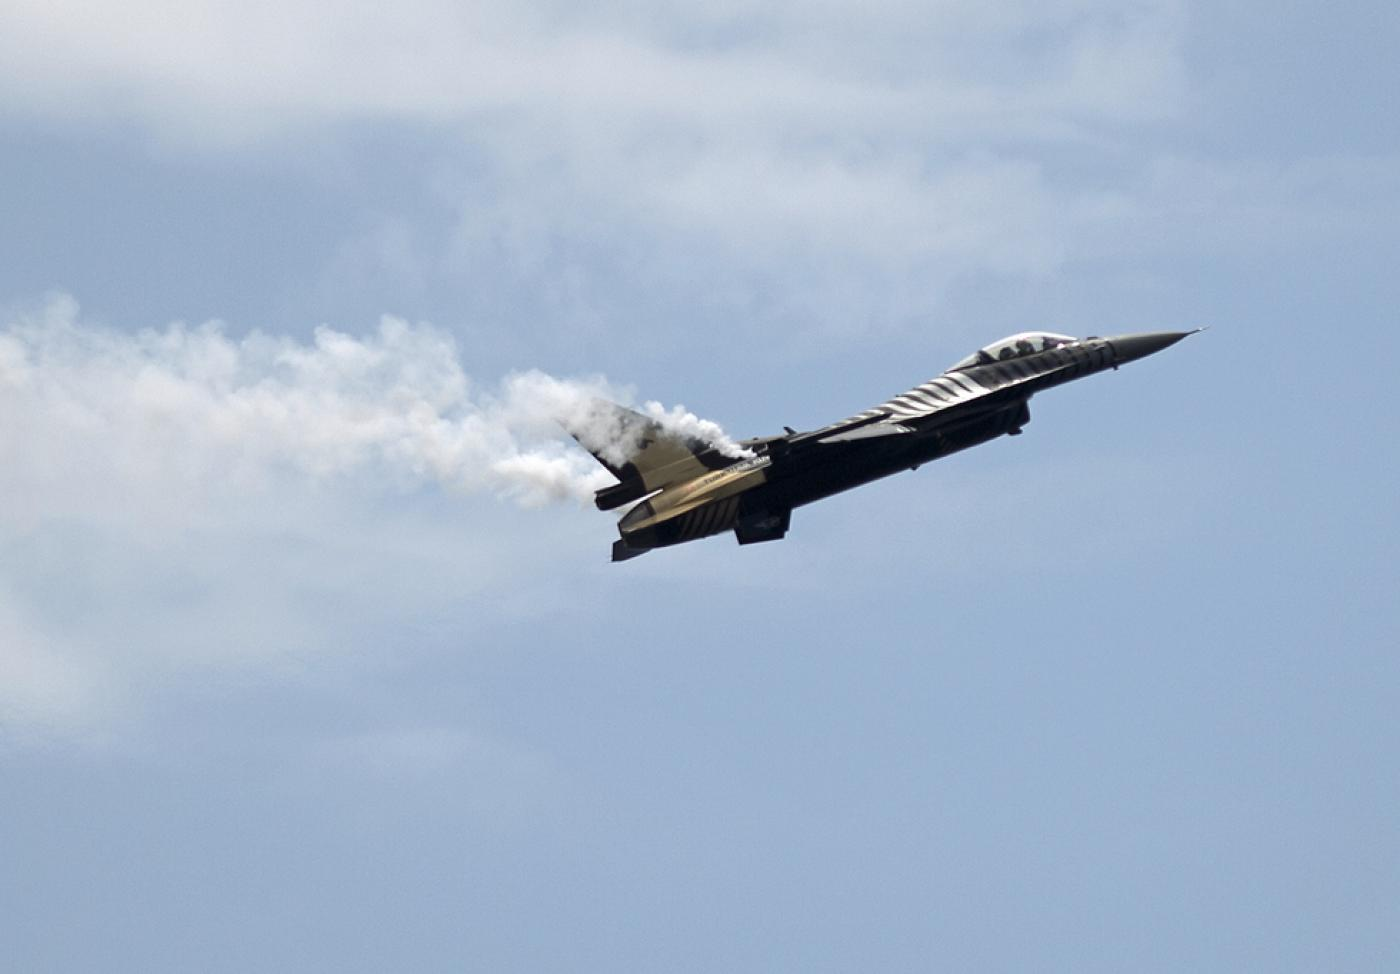 Turkish jets scrambled over to track coastguard boats   Middle East Eye